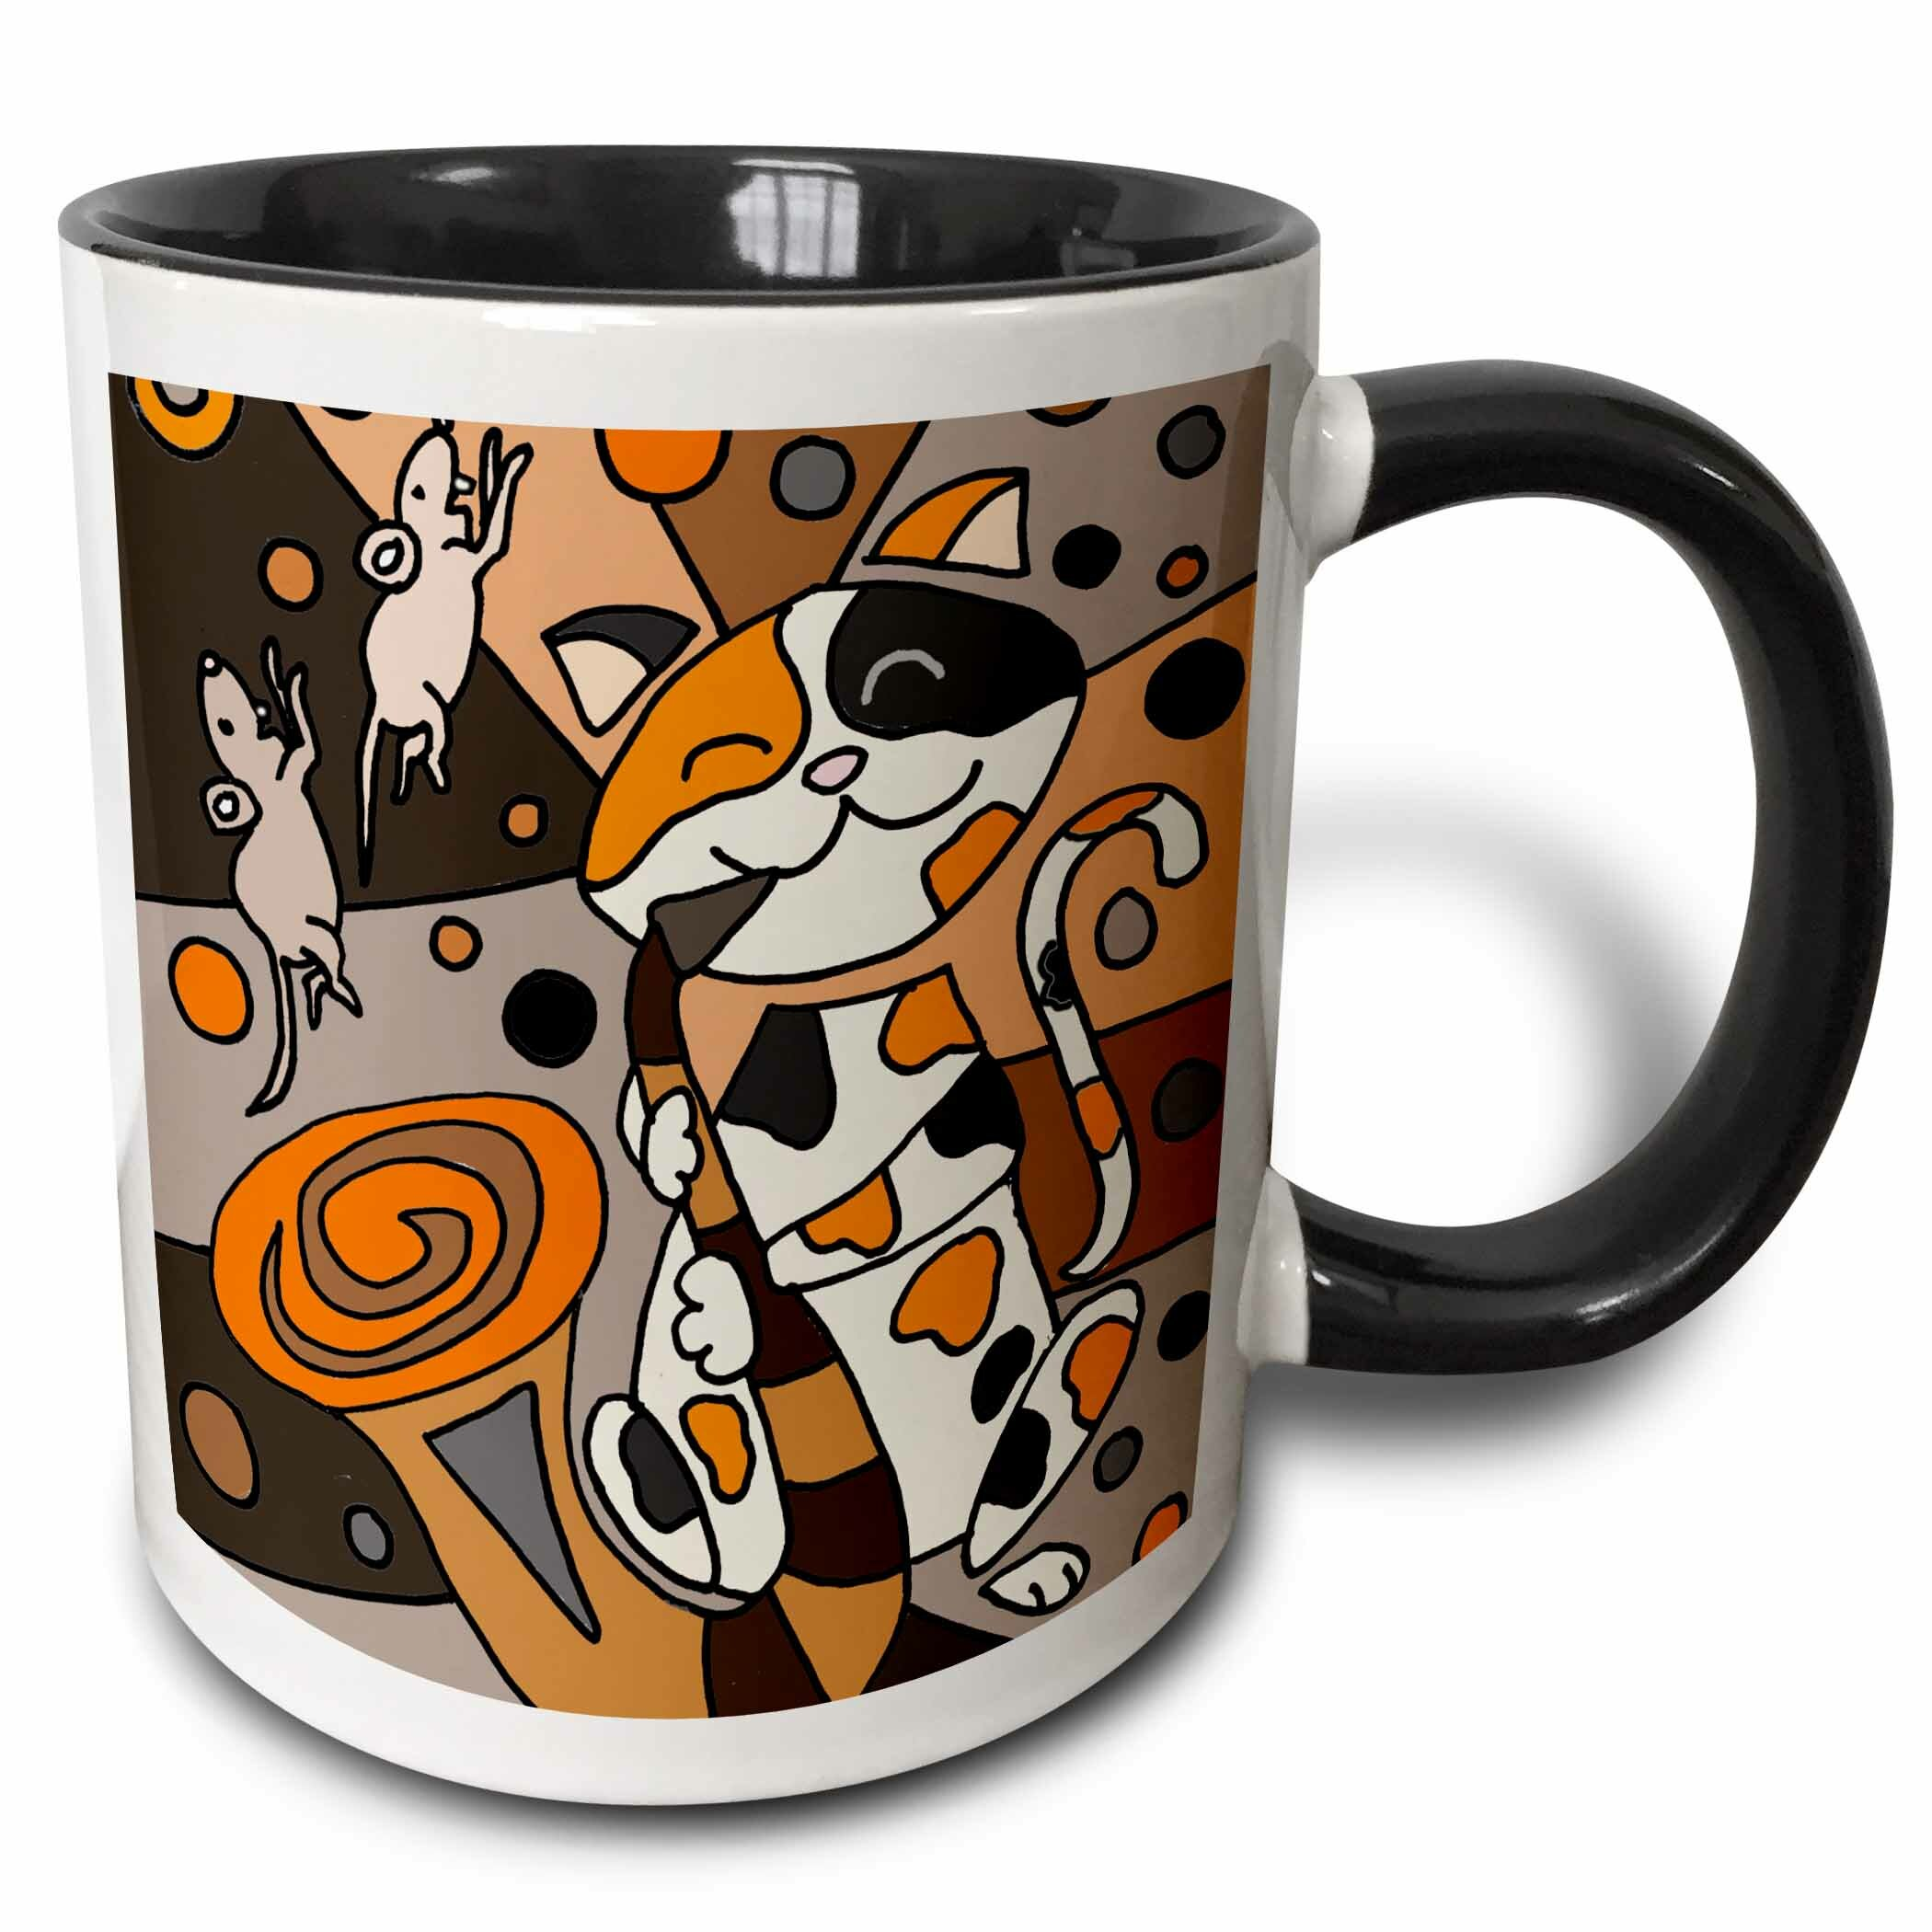 Cat Coffee Mug Personalized at No Charge and signed by the Artist